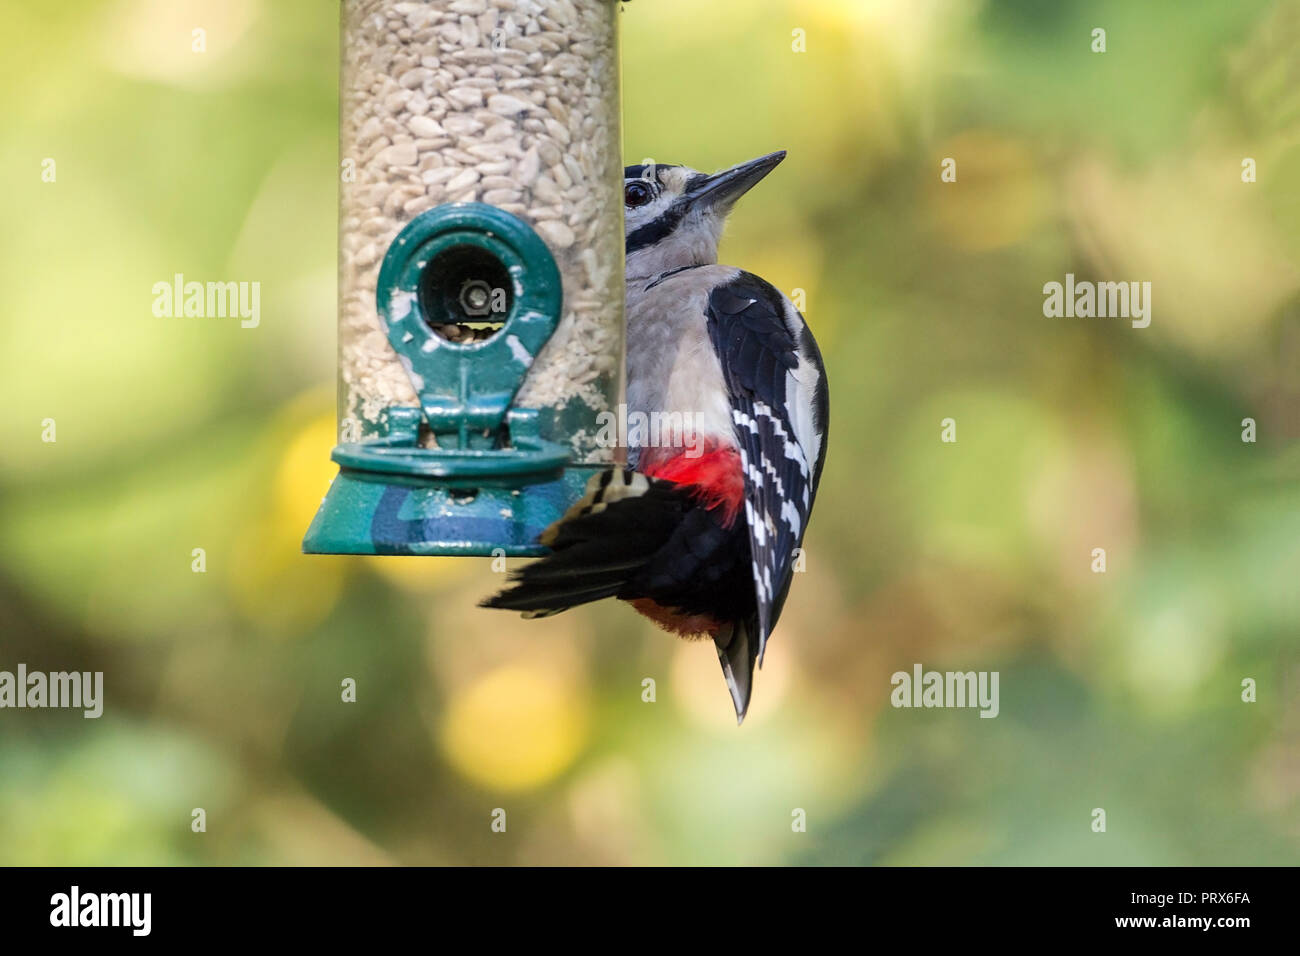 Great spotted Woodpecker (Dendrocopos major) feeding on sunflower seed hearts while clinging onto a feeder. Black and white buff underparts and red. - Stock Image